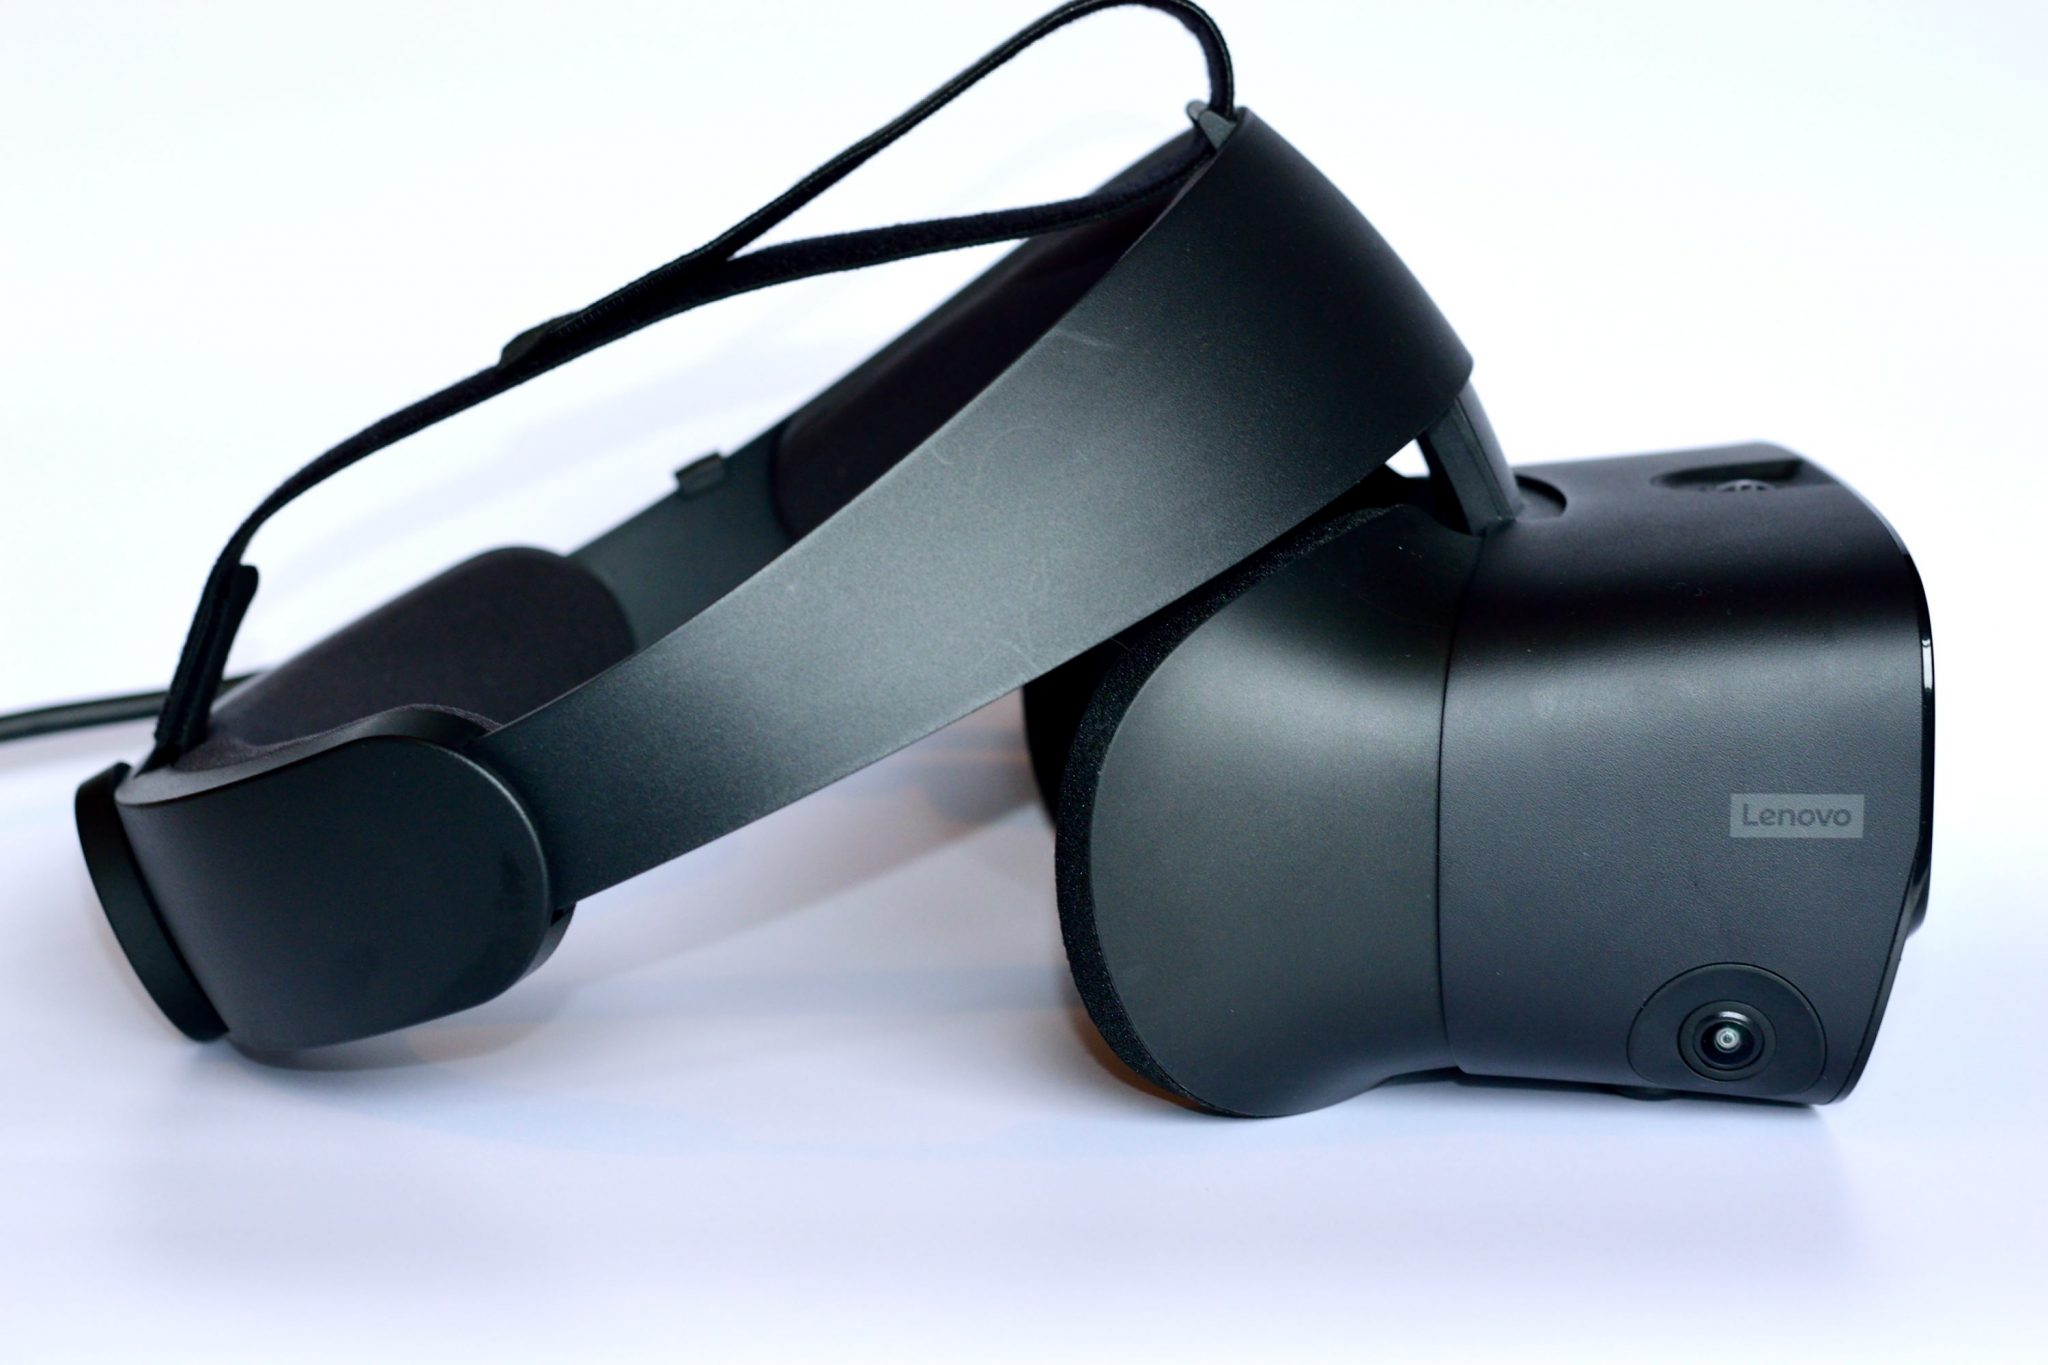 A side view of the Oculus Rift S VR Headset